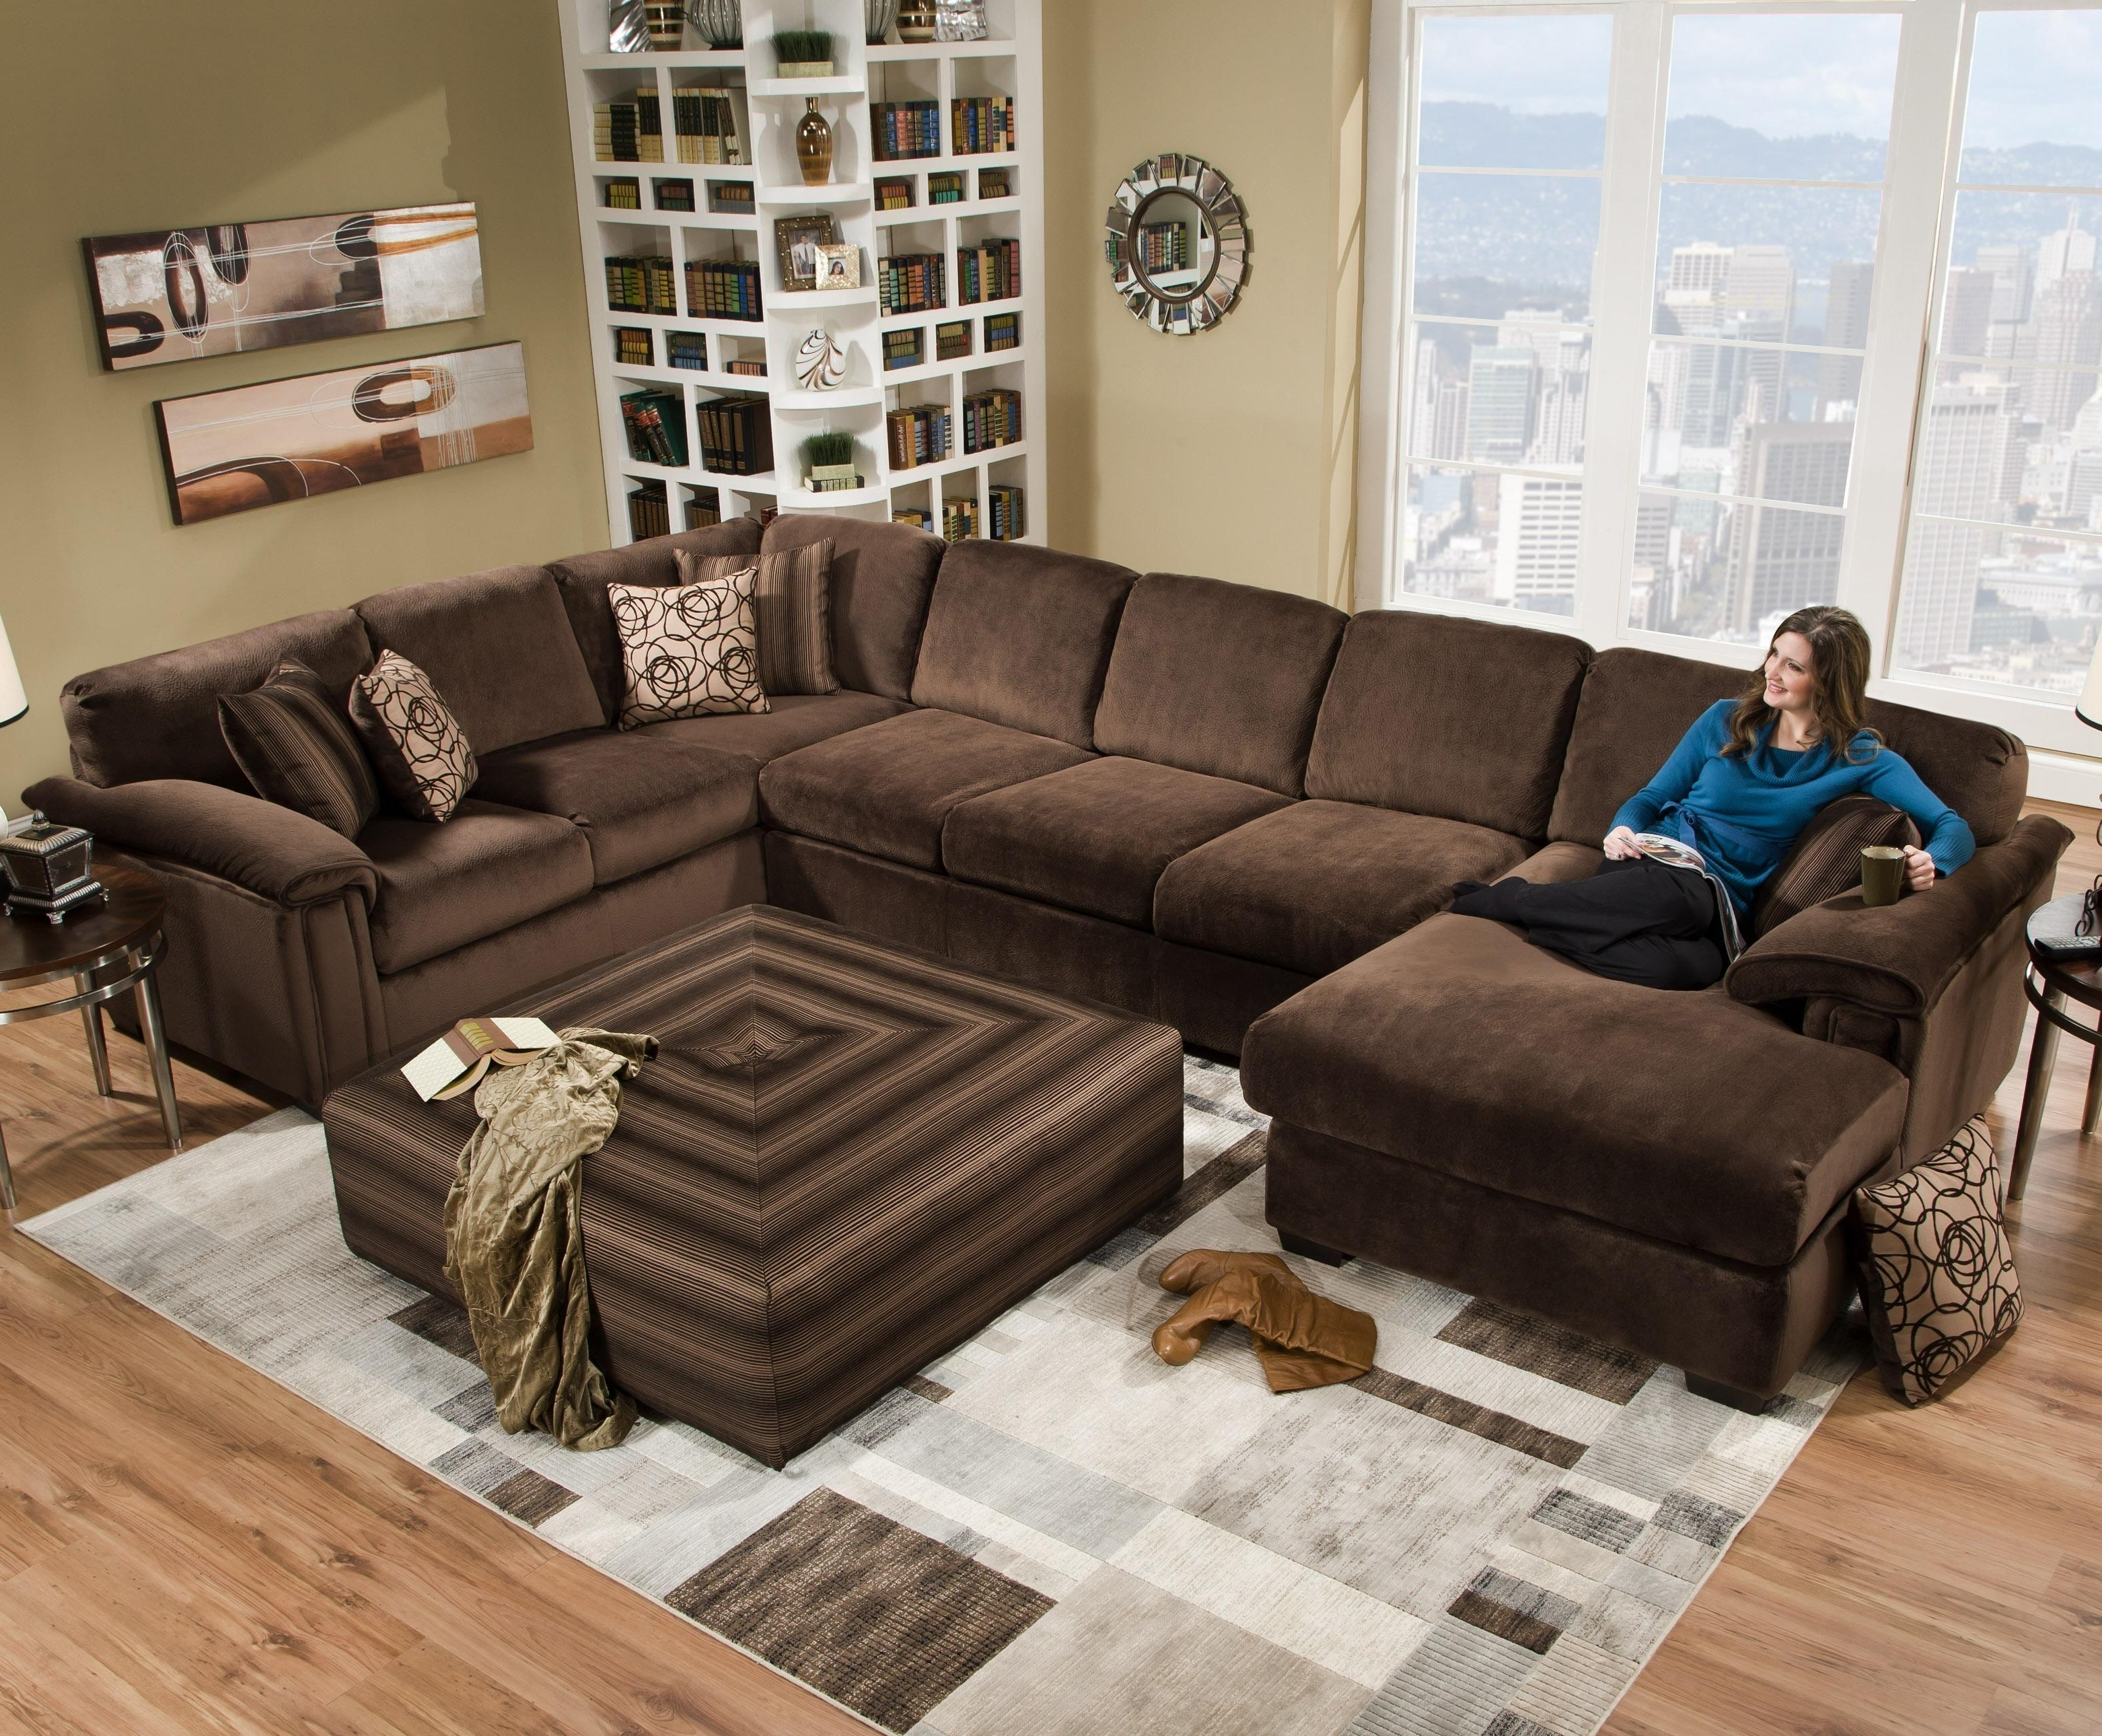 Nebraska Furniture Mart Sectional Sofas In Fashionable Furniture : Nebraska Furniture Mart Couches Lovely Six Person (View 9 of 15)